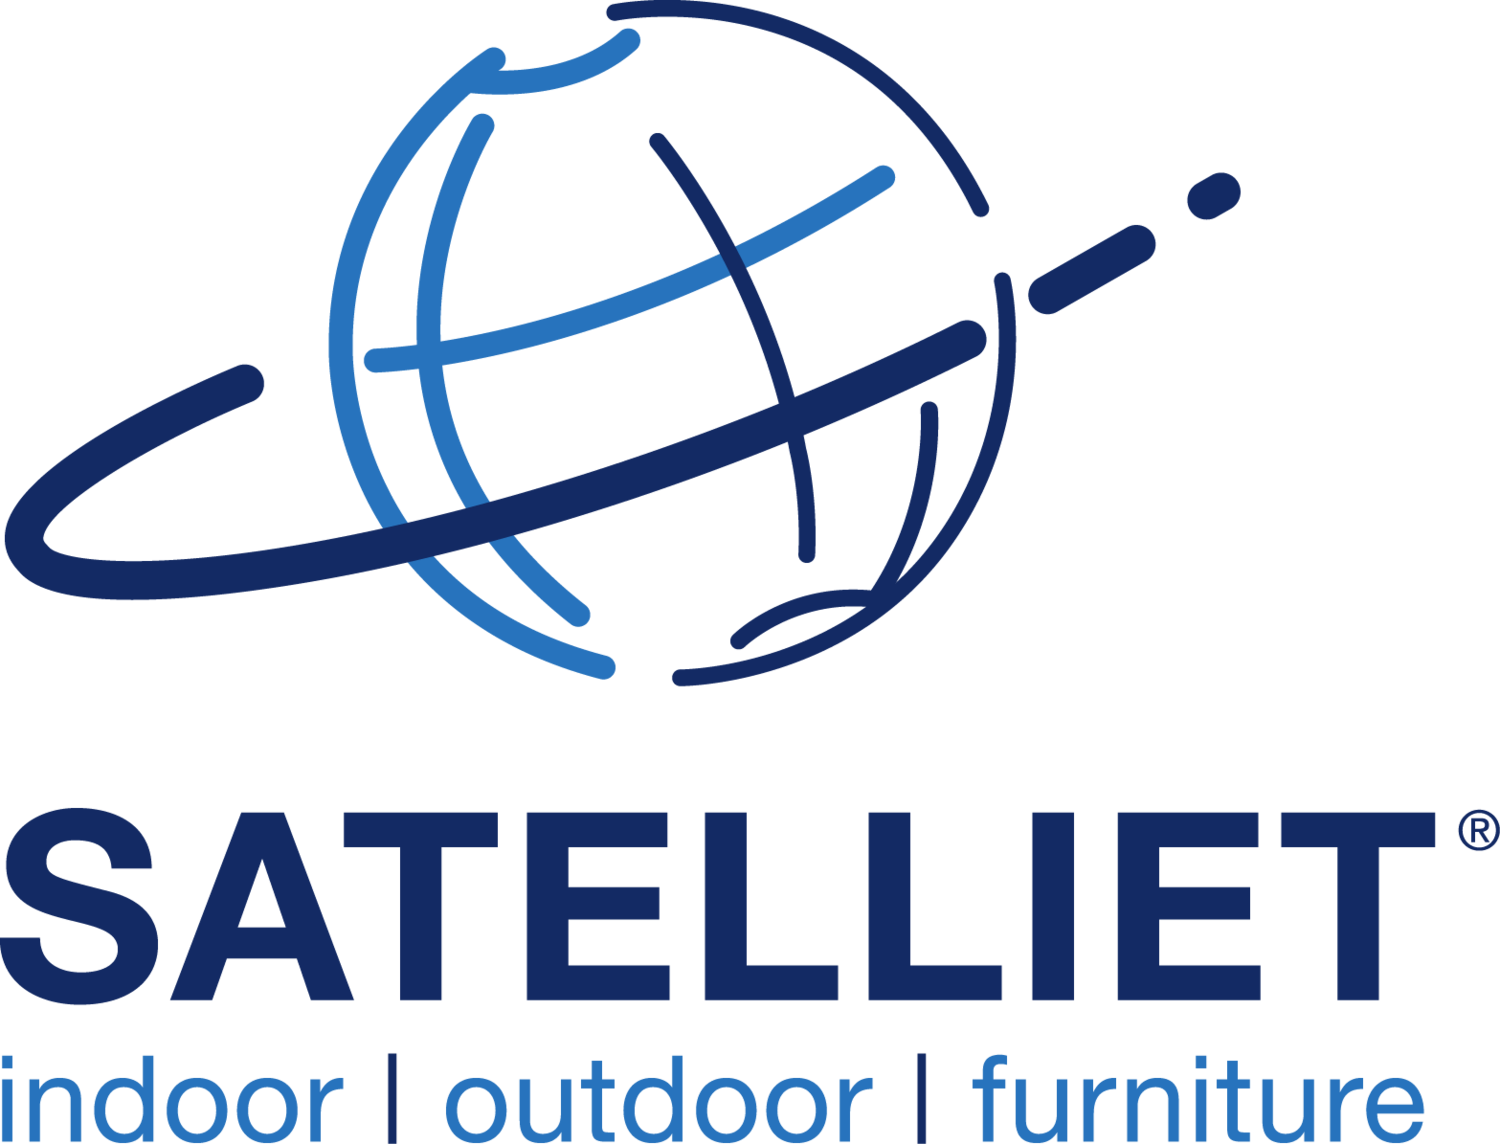 Satelliet Norge